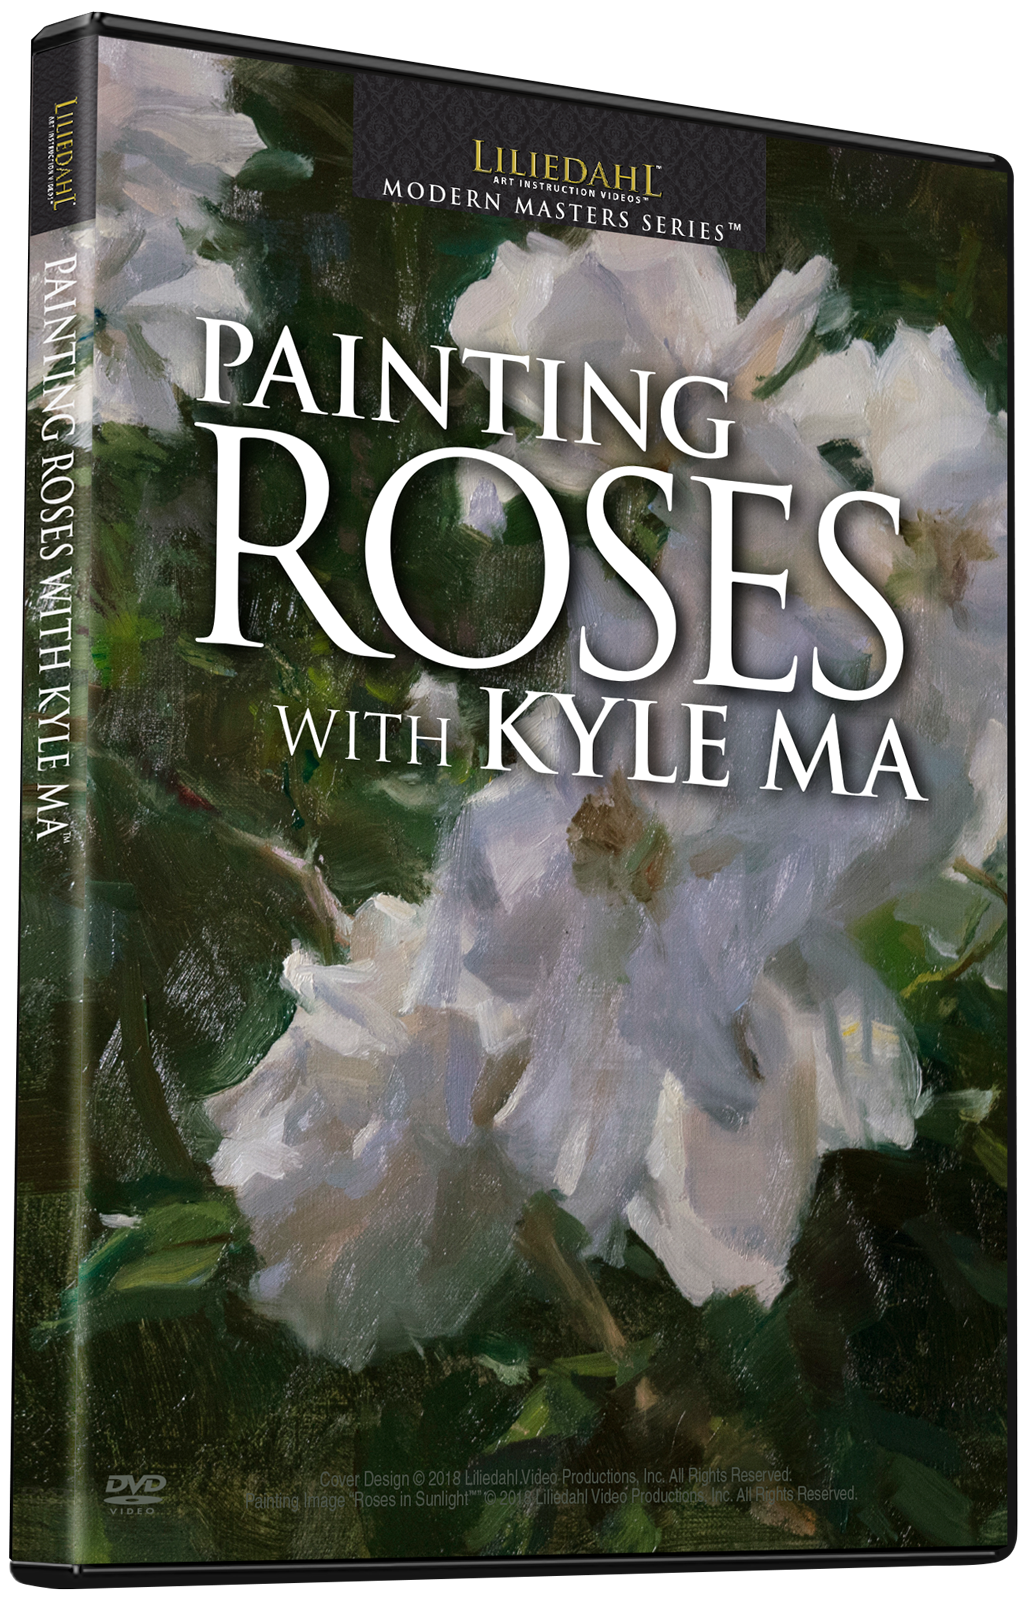 Kyle Ma: Painting Roses